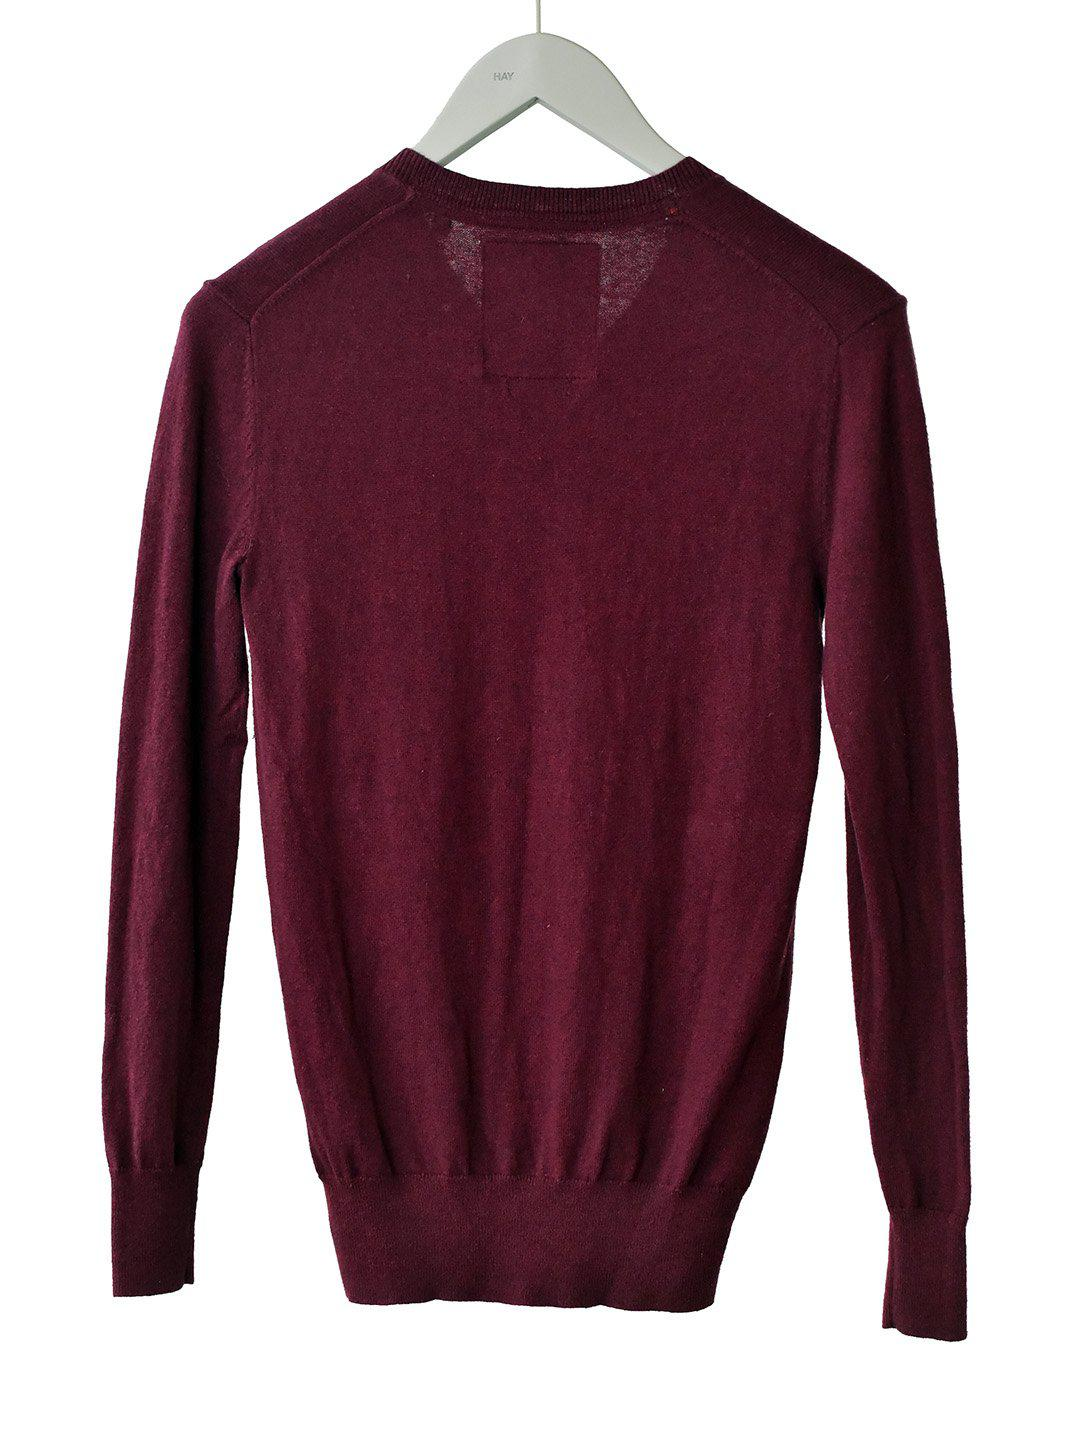 Bordeaux Sweater i Strik fra SuperDry